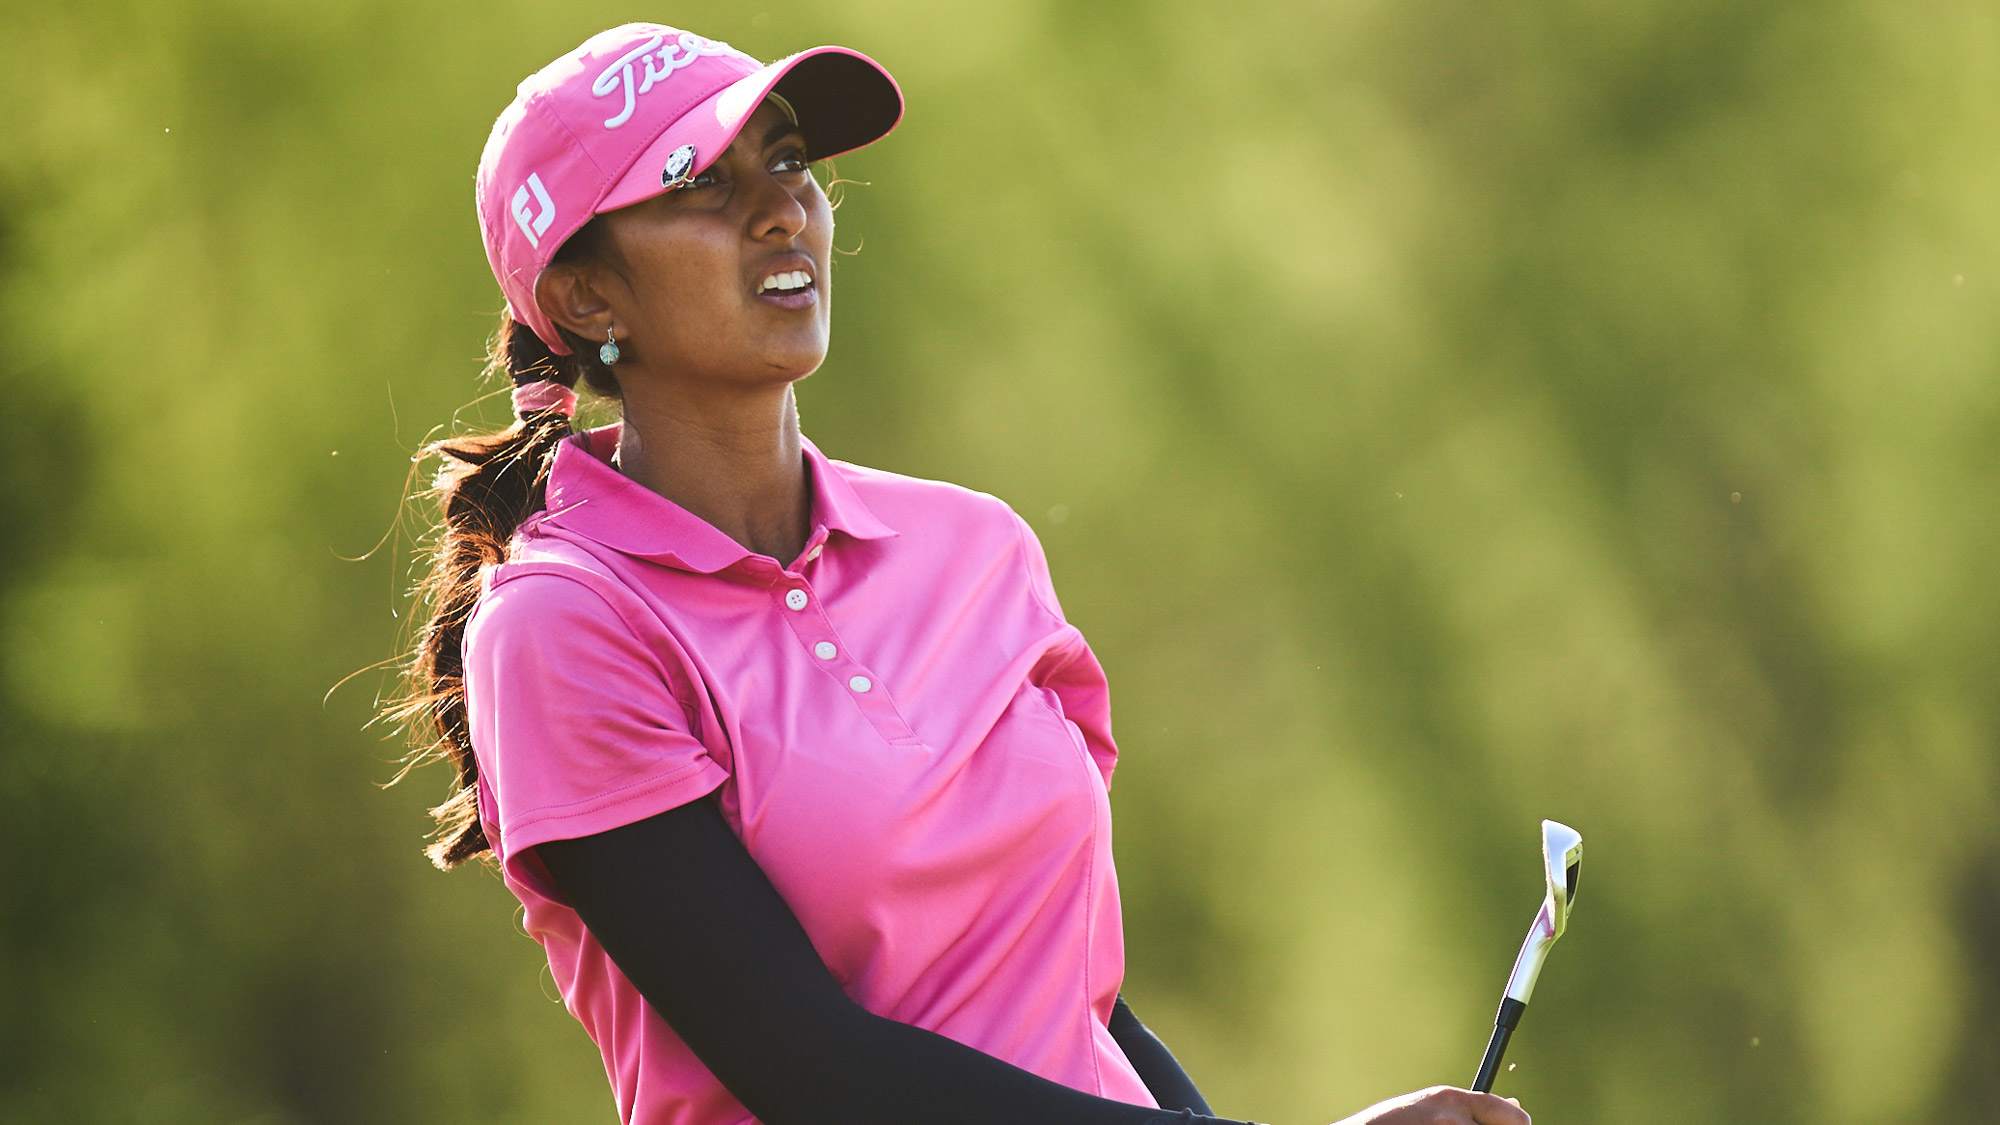 Aditi Ashok Moved to 6-under on Saturday at the VOA LPGA Texas Classic